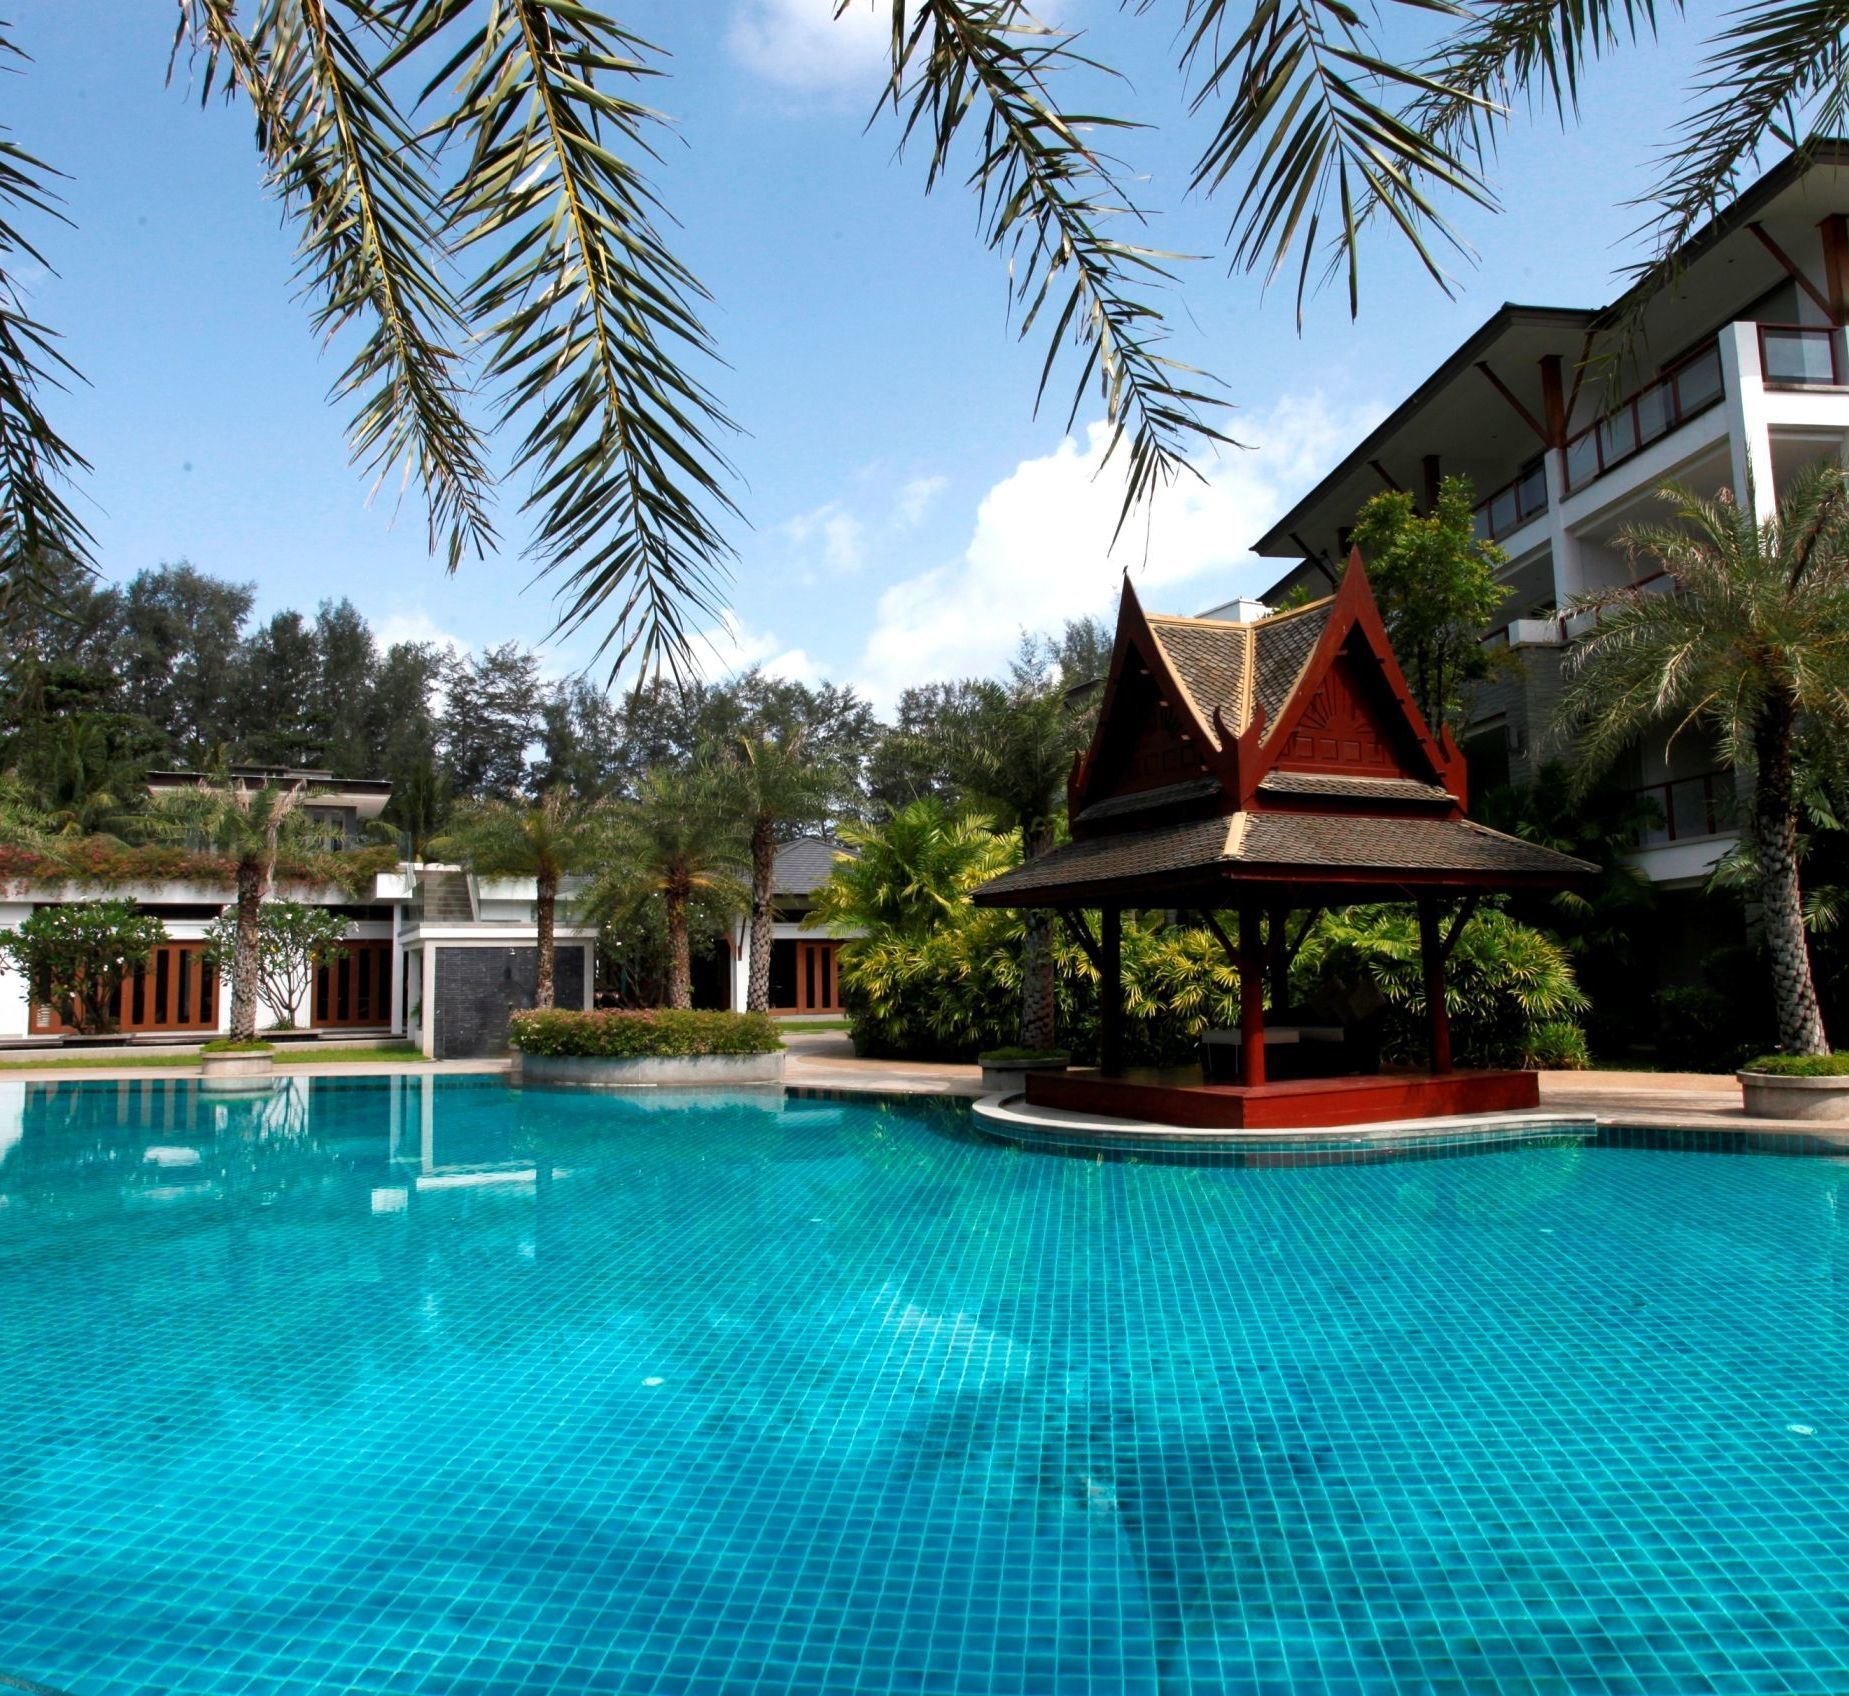 3 Bedrooms apartment for rent Phuket Naithon Beach CP03